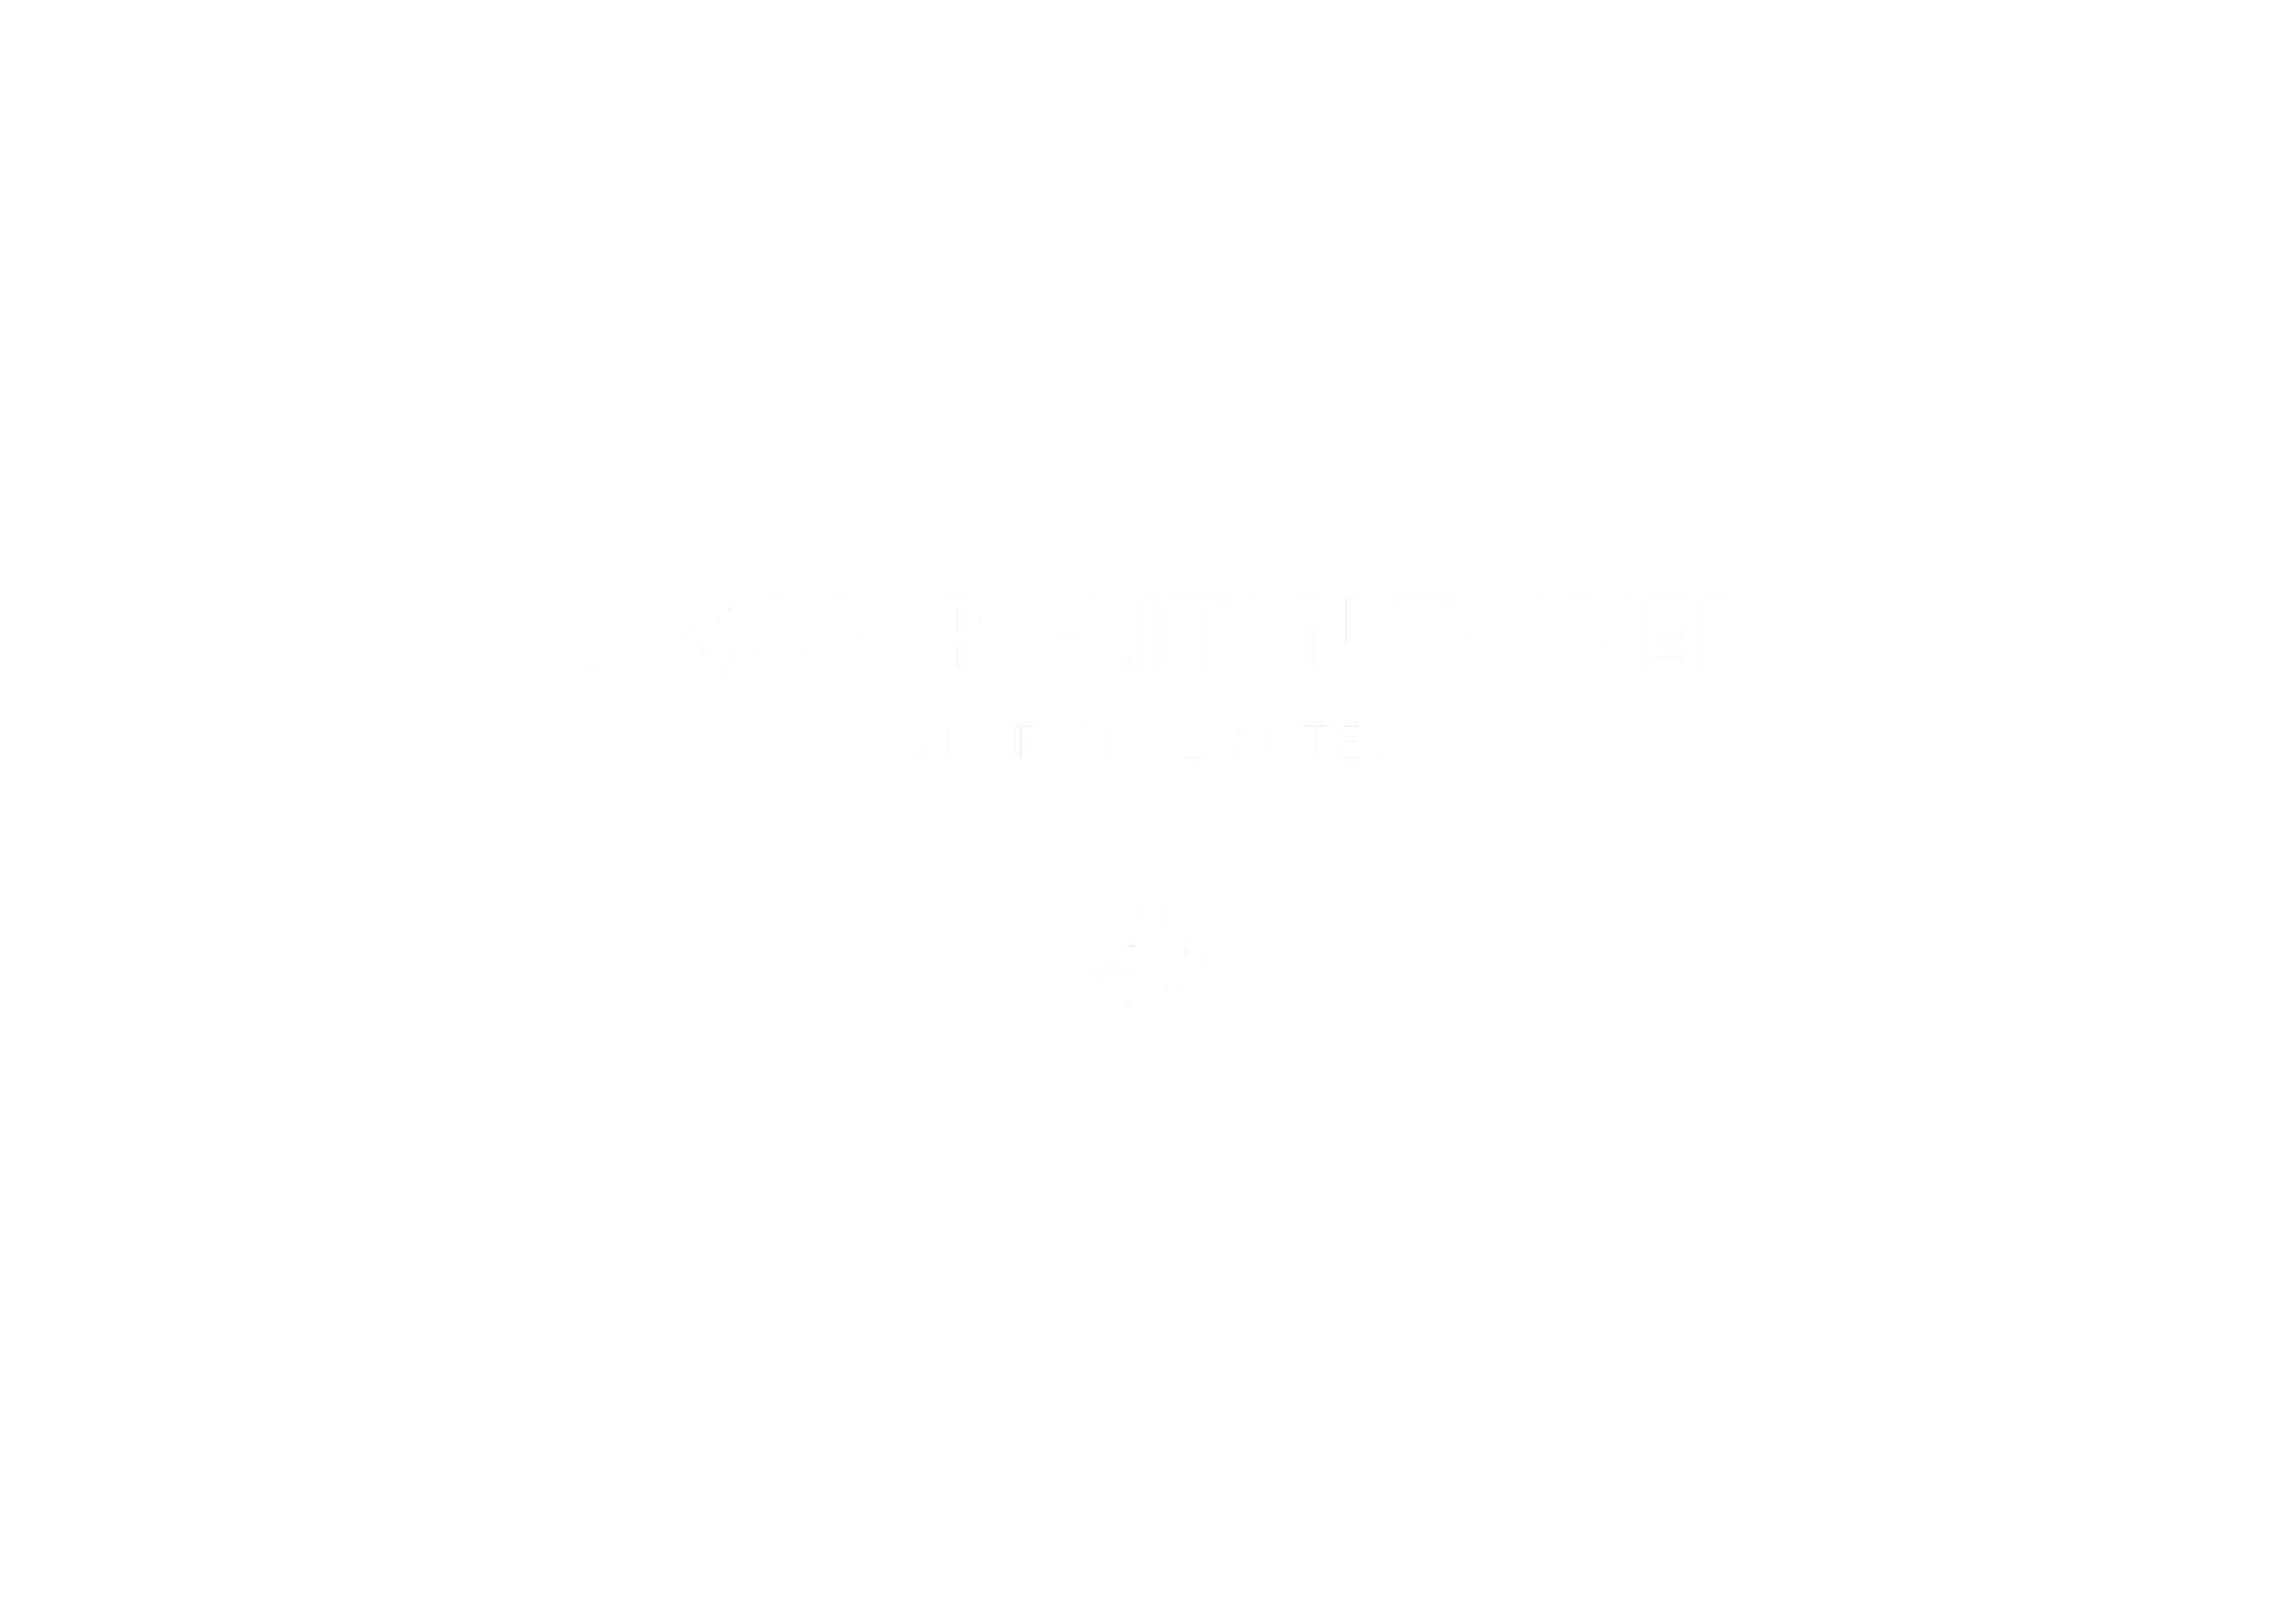 logo cosmopolitan tower